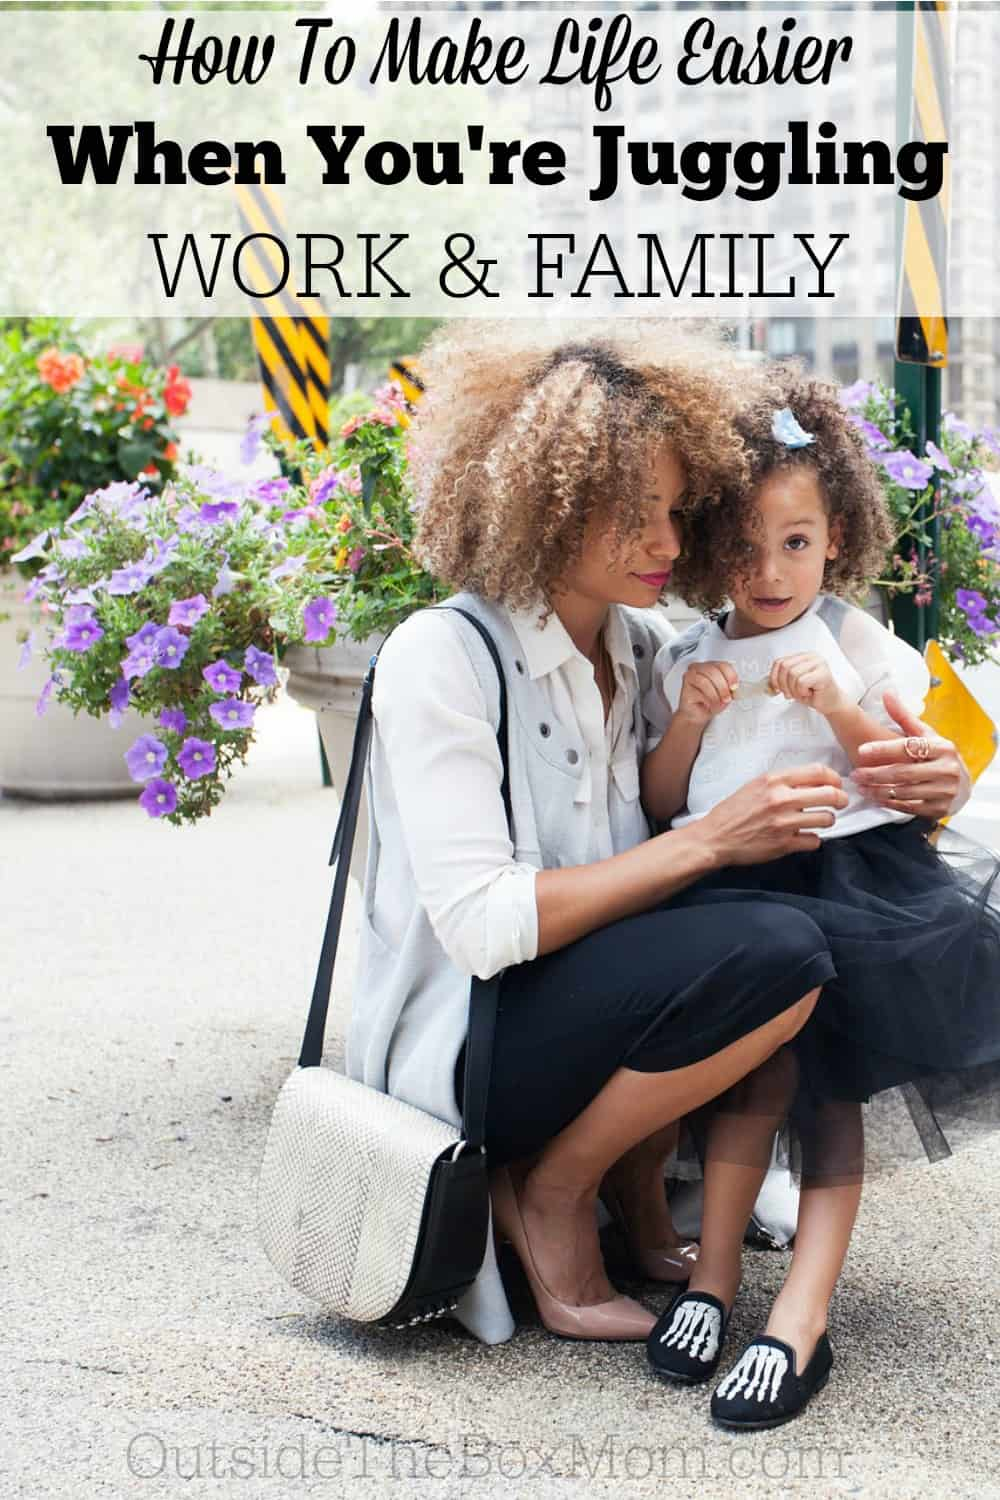 Are you about to return to work? Are you starting a new job, or trying to launch your own business? This post has six tips to make life easier when you're balancing work and family.